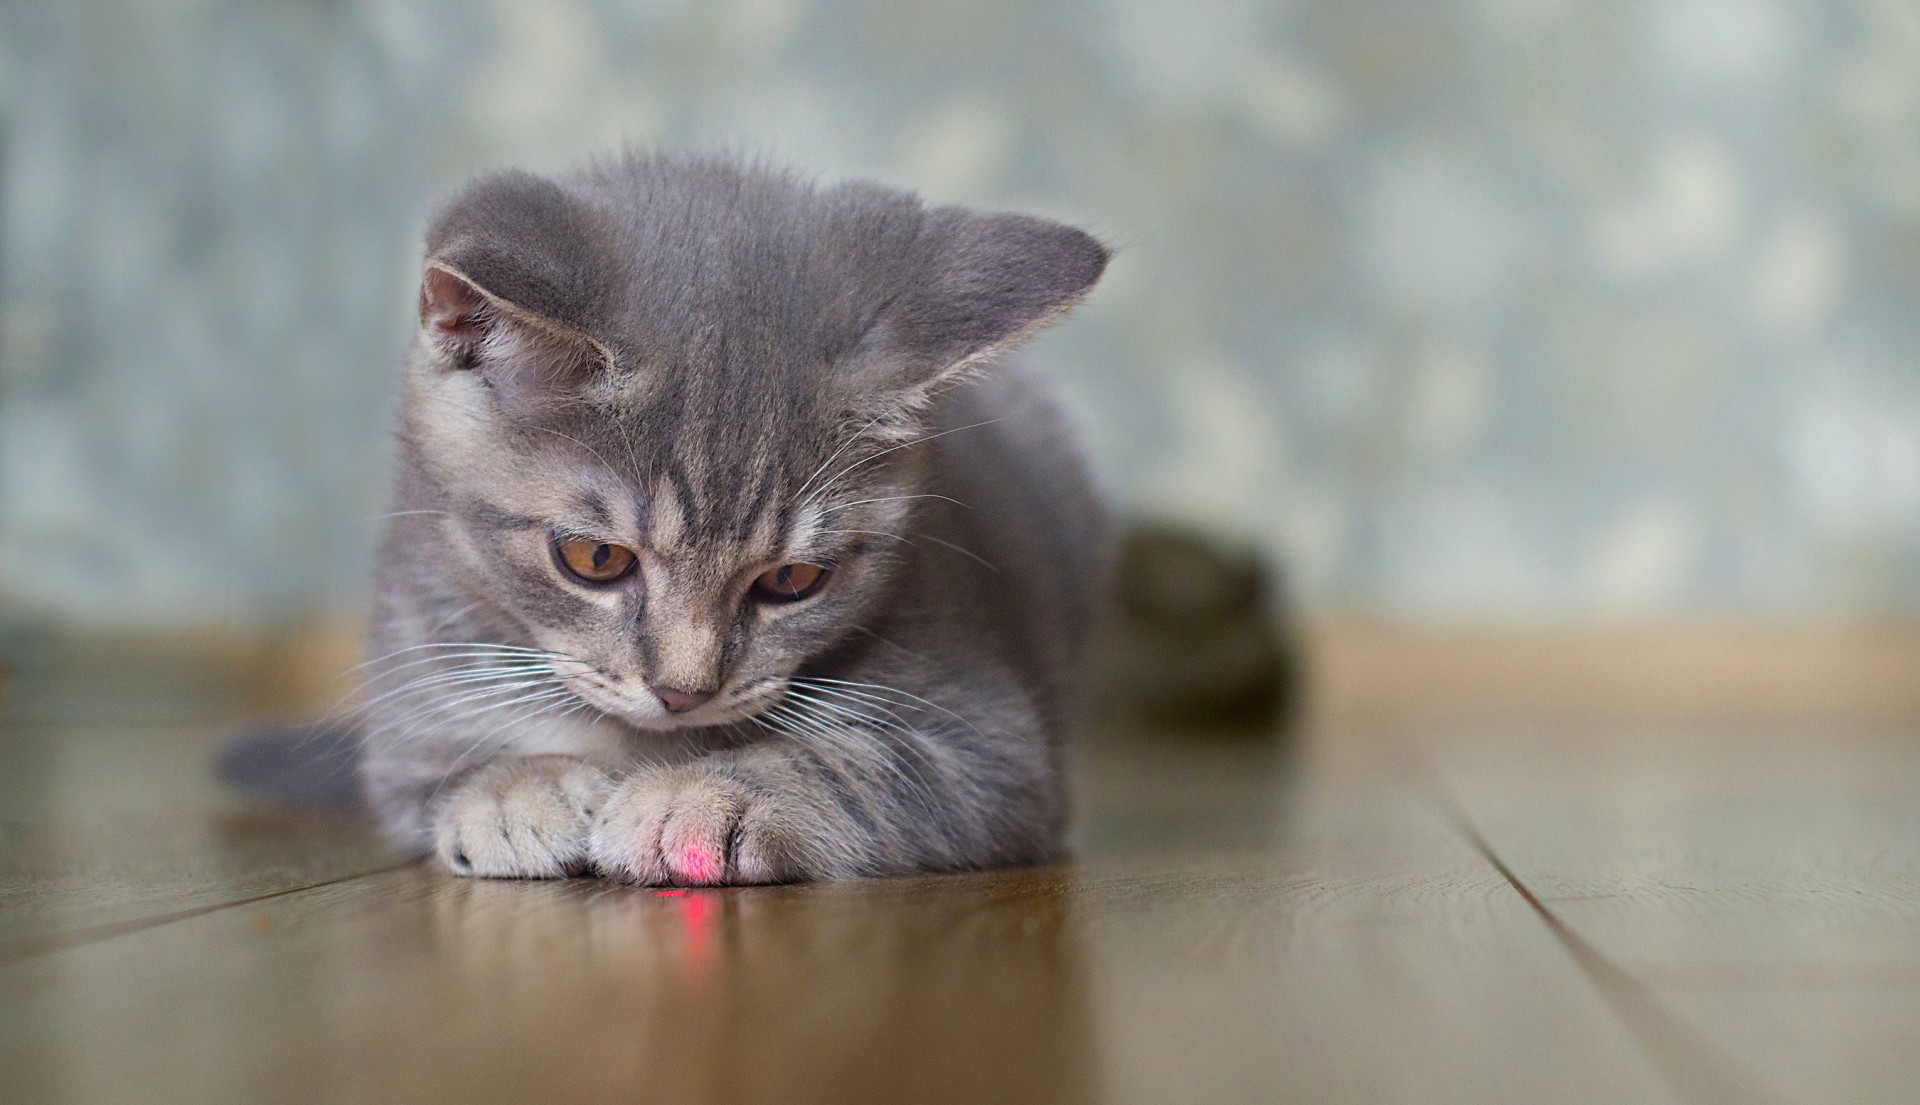 Staring at the beam from a small laser pointer used to exercise pets can cause permanent eye damage, according to the study.